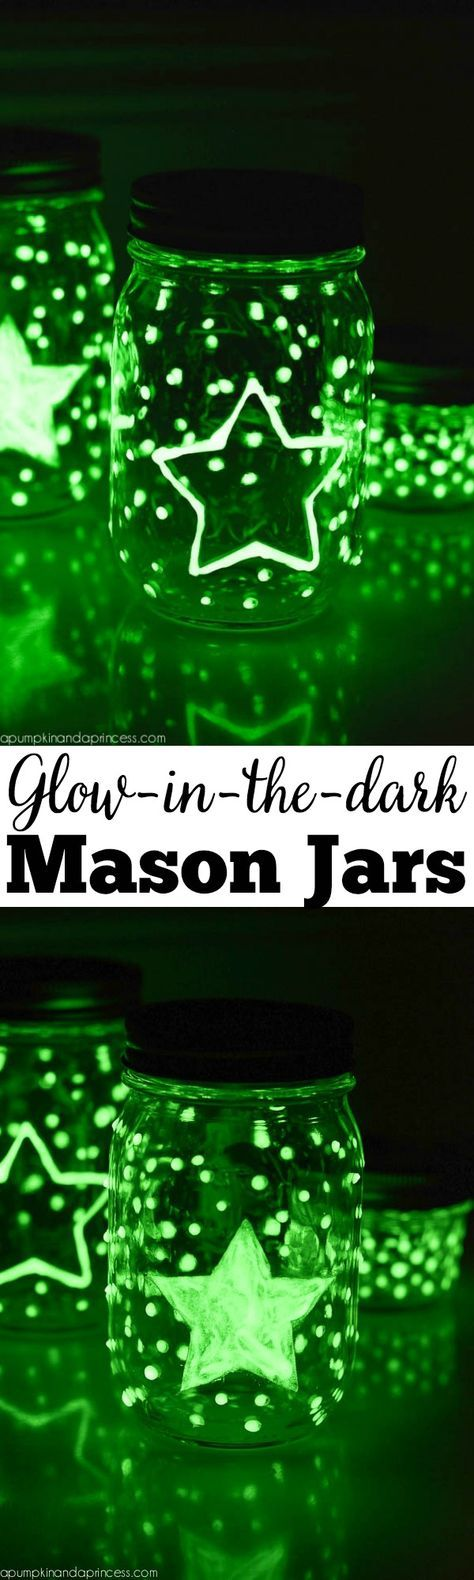 Glow-in-the-dark Mason Jars